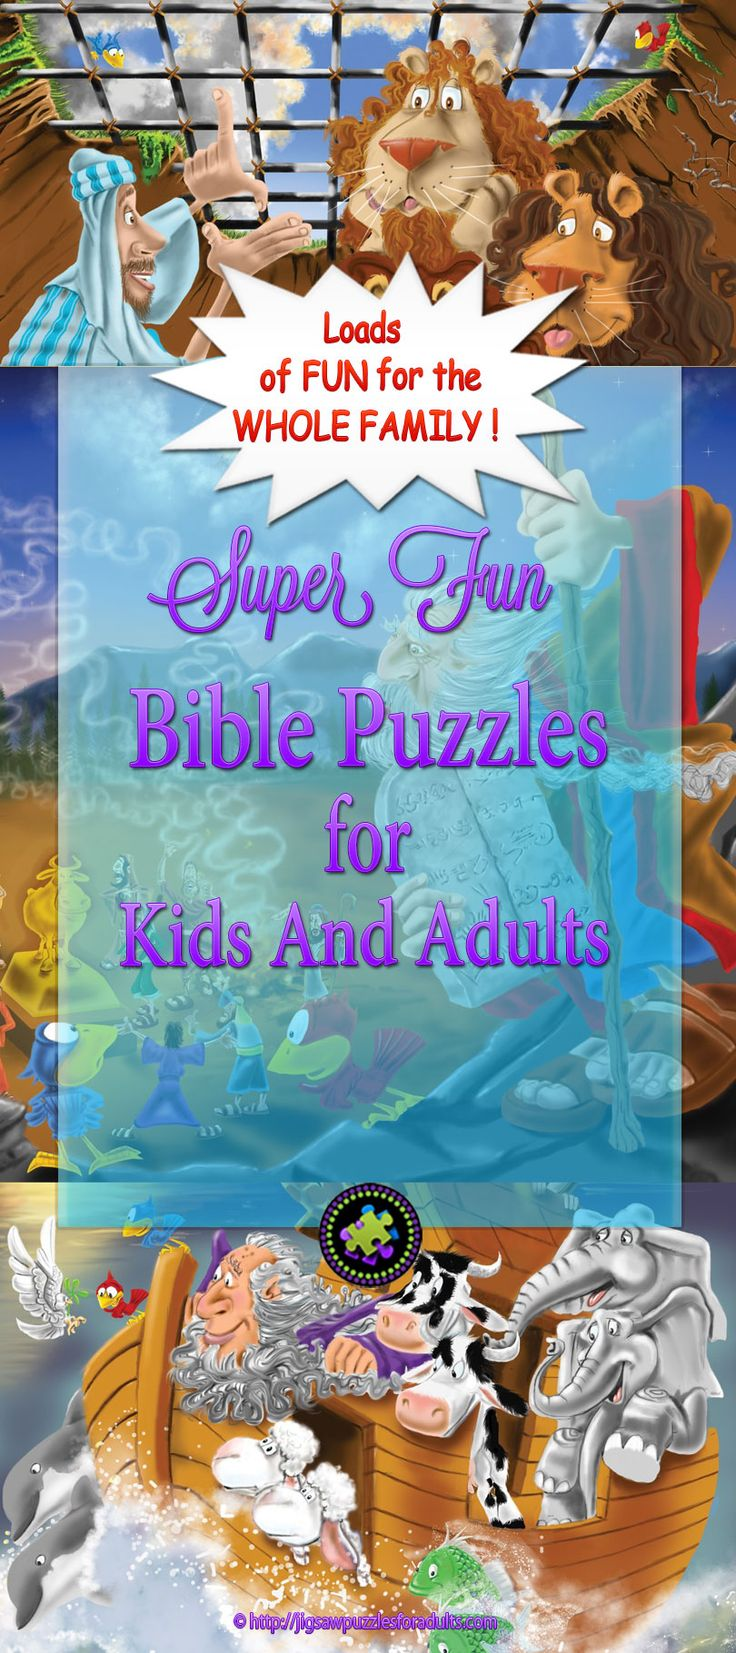 Bible puzzles kids and adults can work on together. You'll find plenty of Bible puzzles kids will have loads of fun putting together and it's a fantastic way for kids and adults to have quality time together.This is a great opportunity to have fun doing a jigsaw puzzle and learning at the same time!